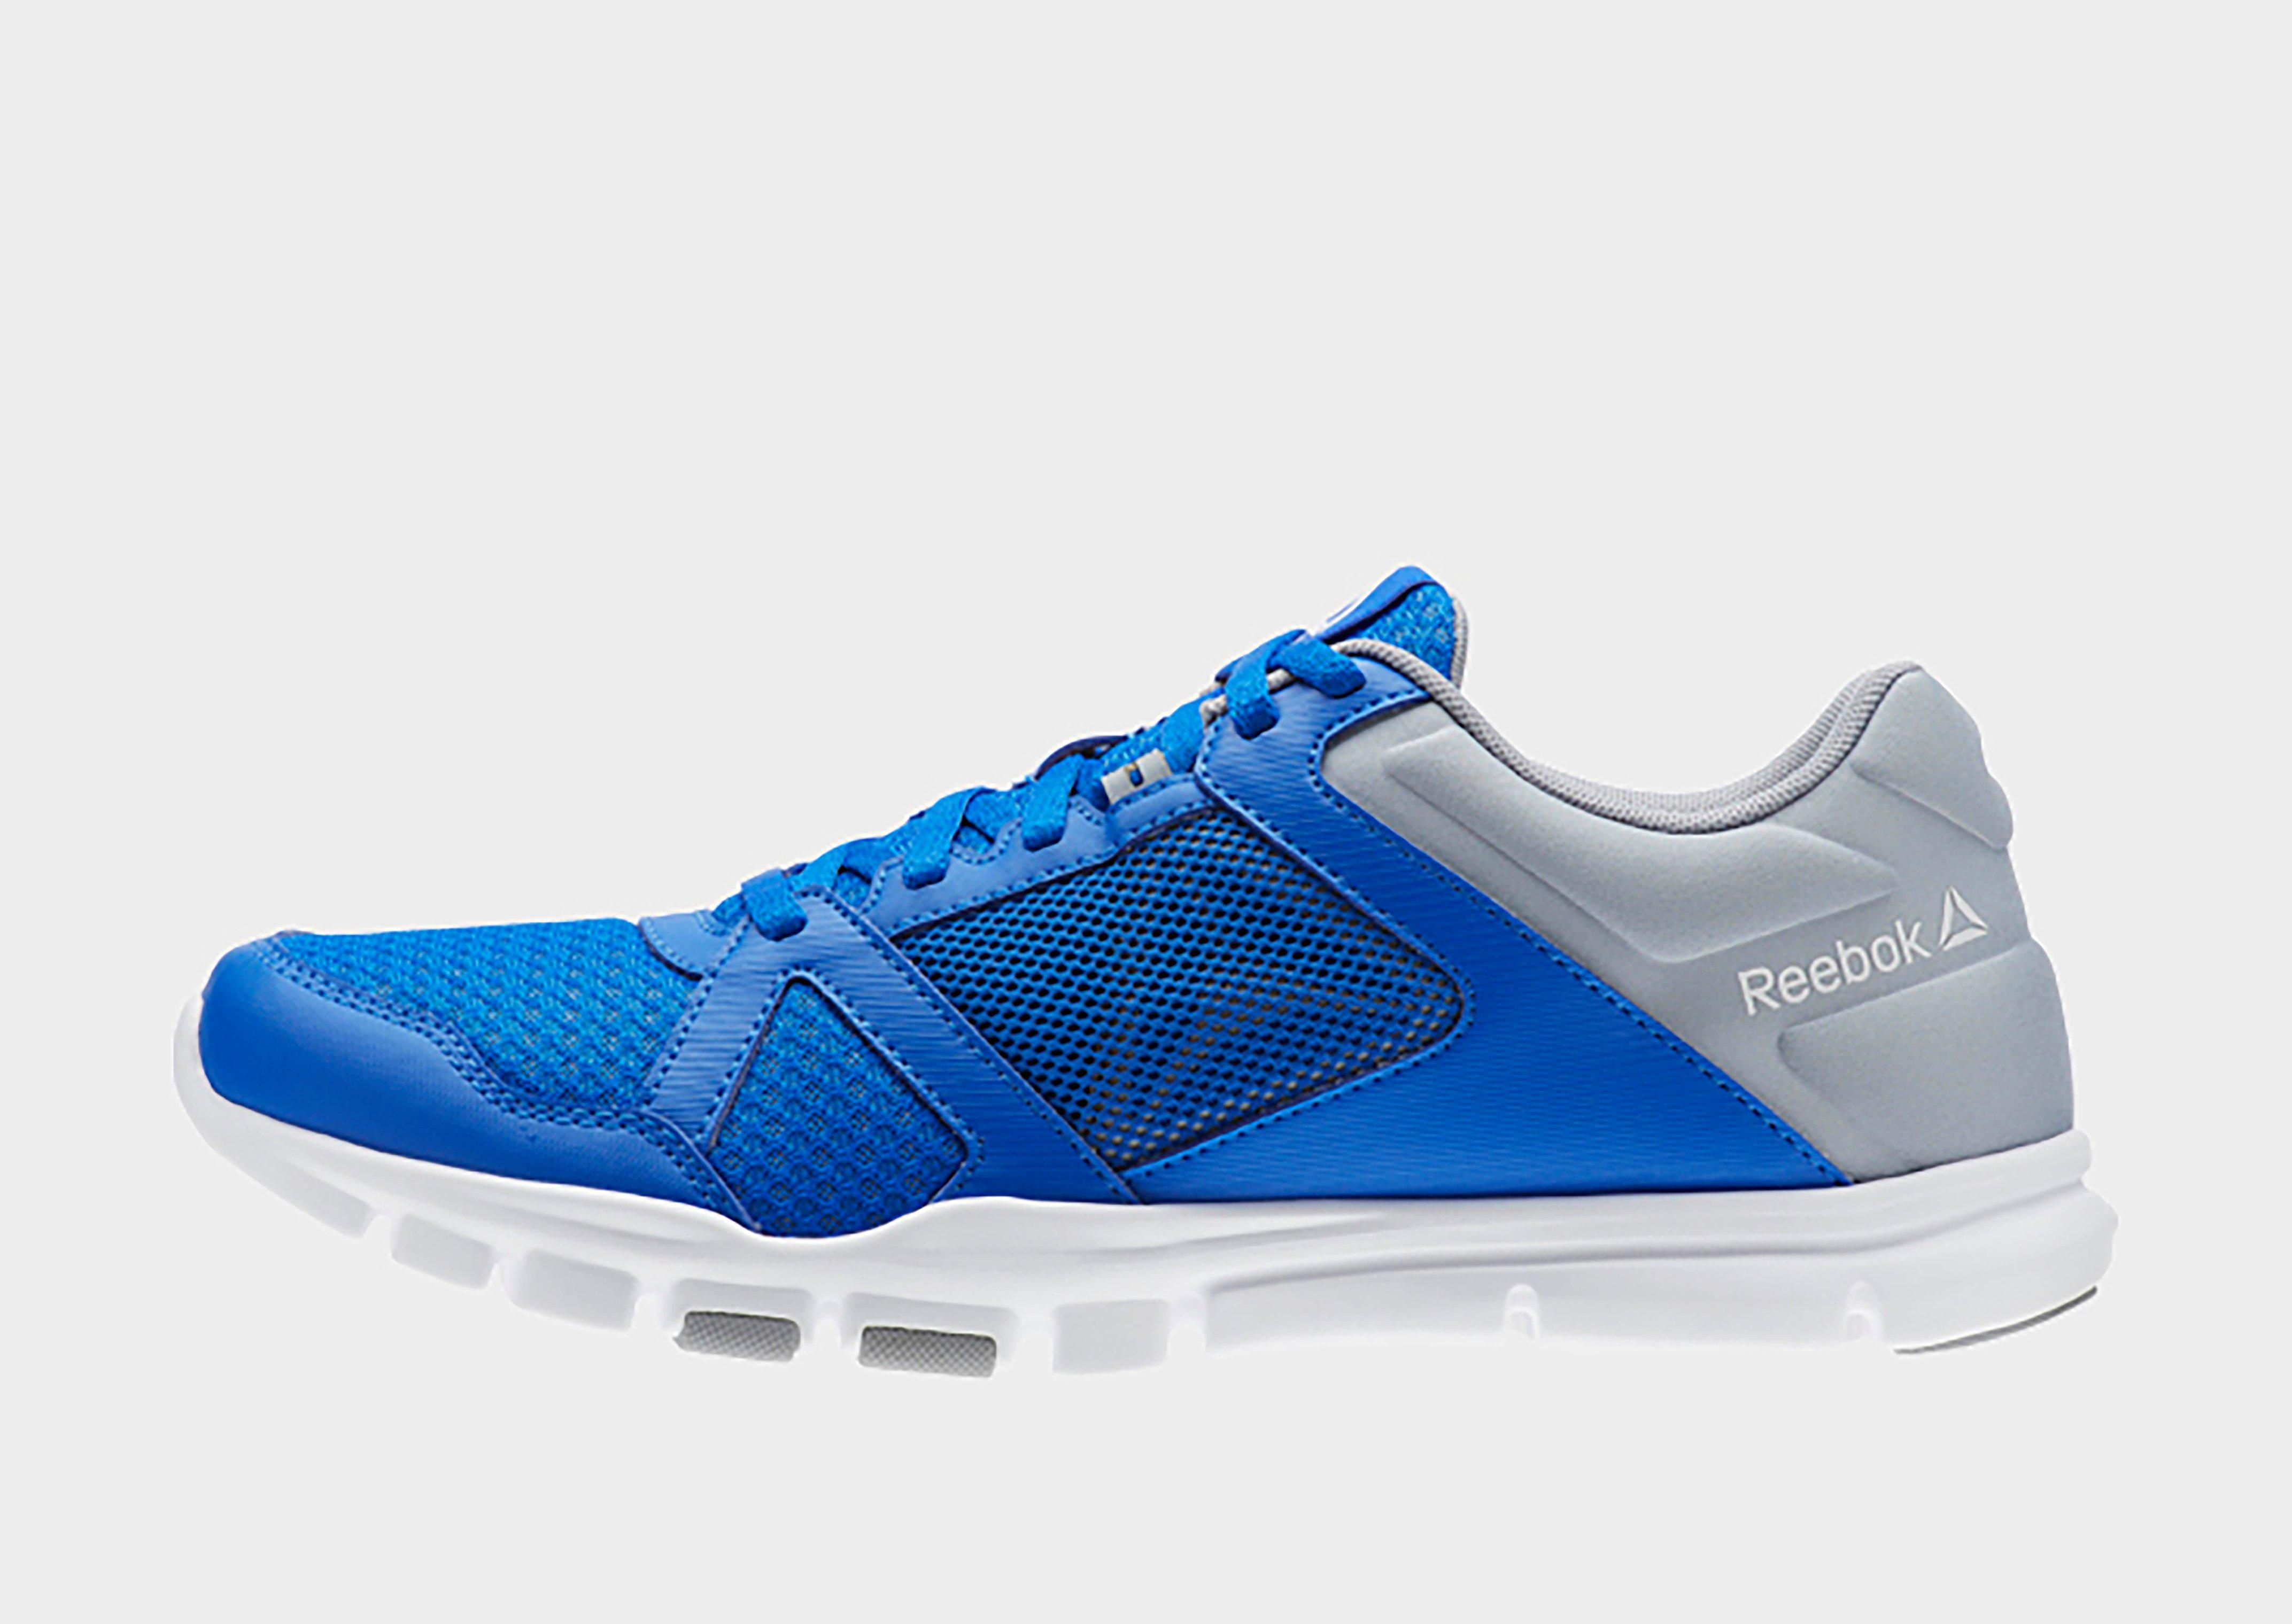 Lyst - Reebok Yourflex Train 10 Mt in Blue for Men ca2bd790a